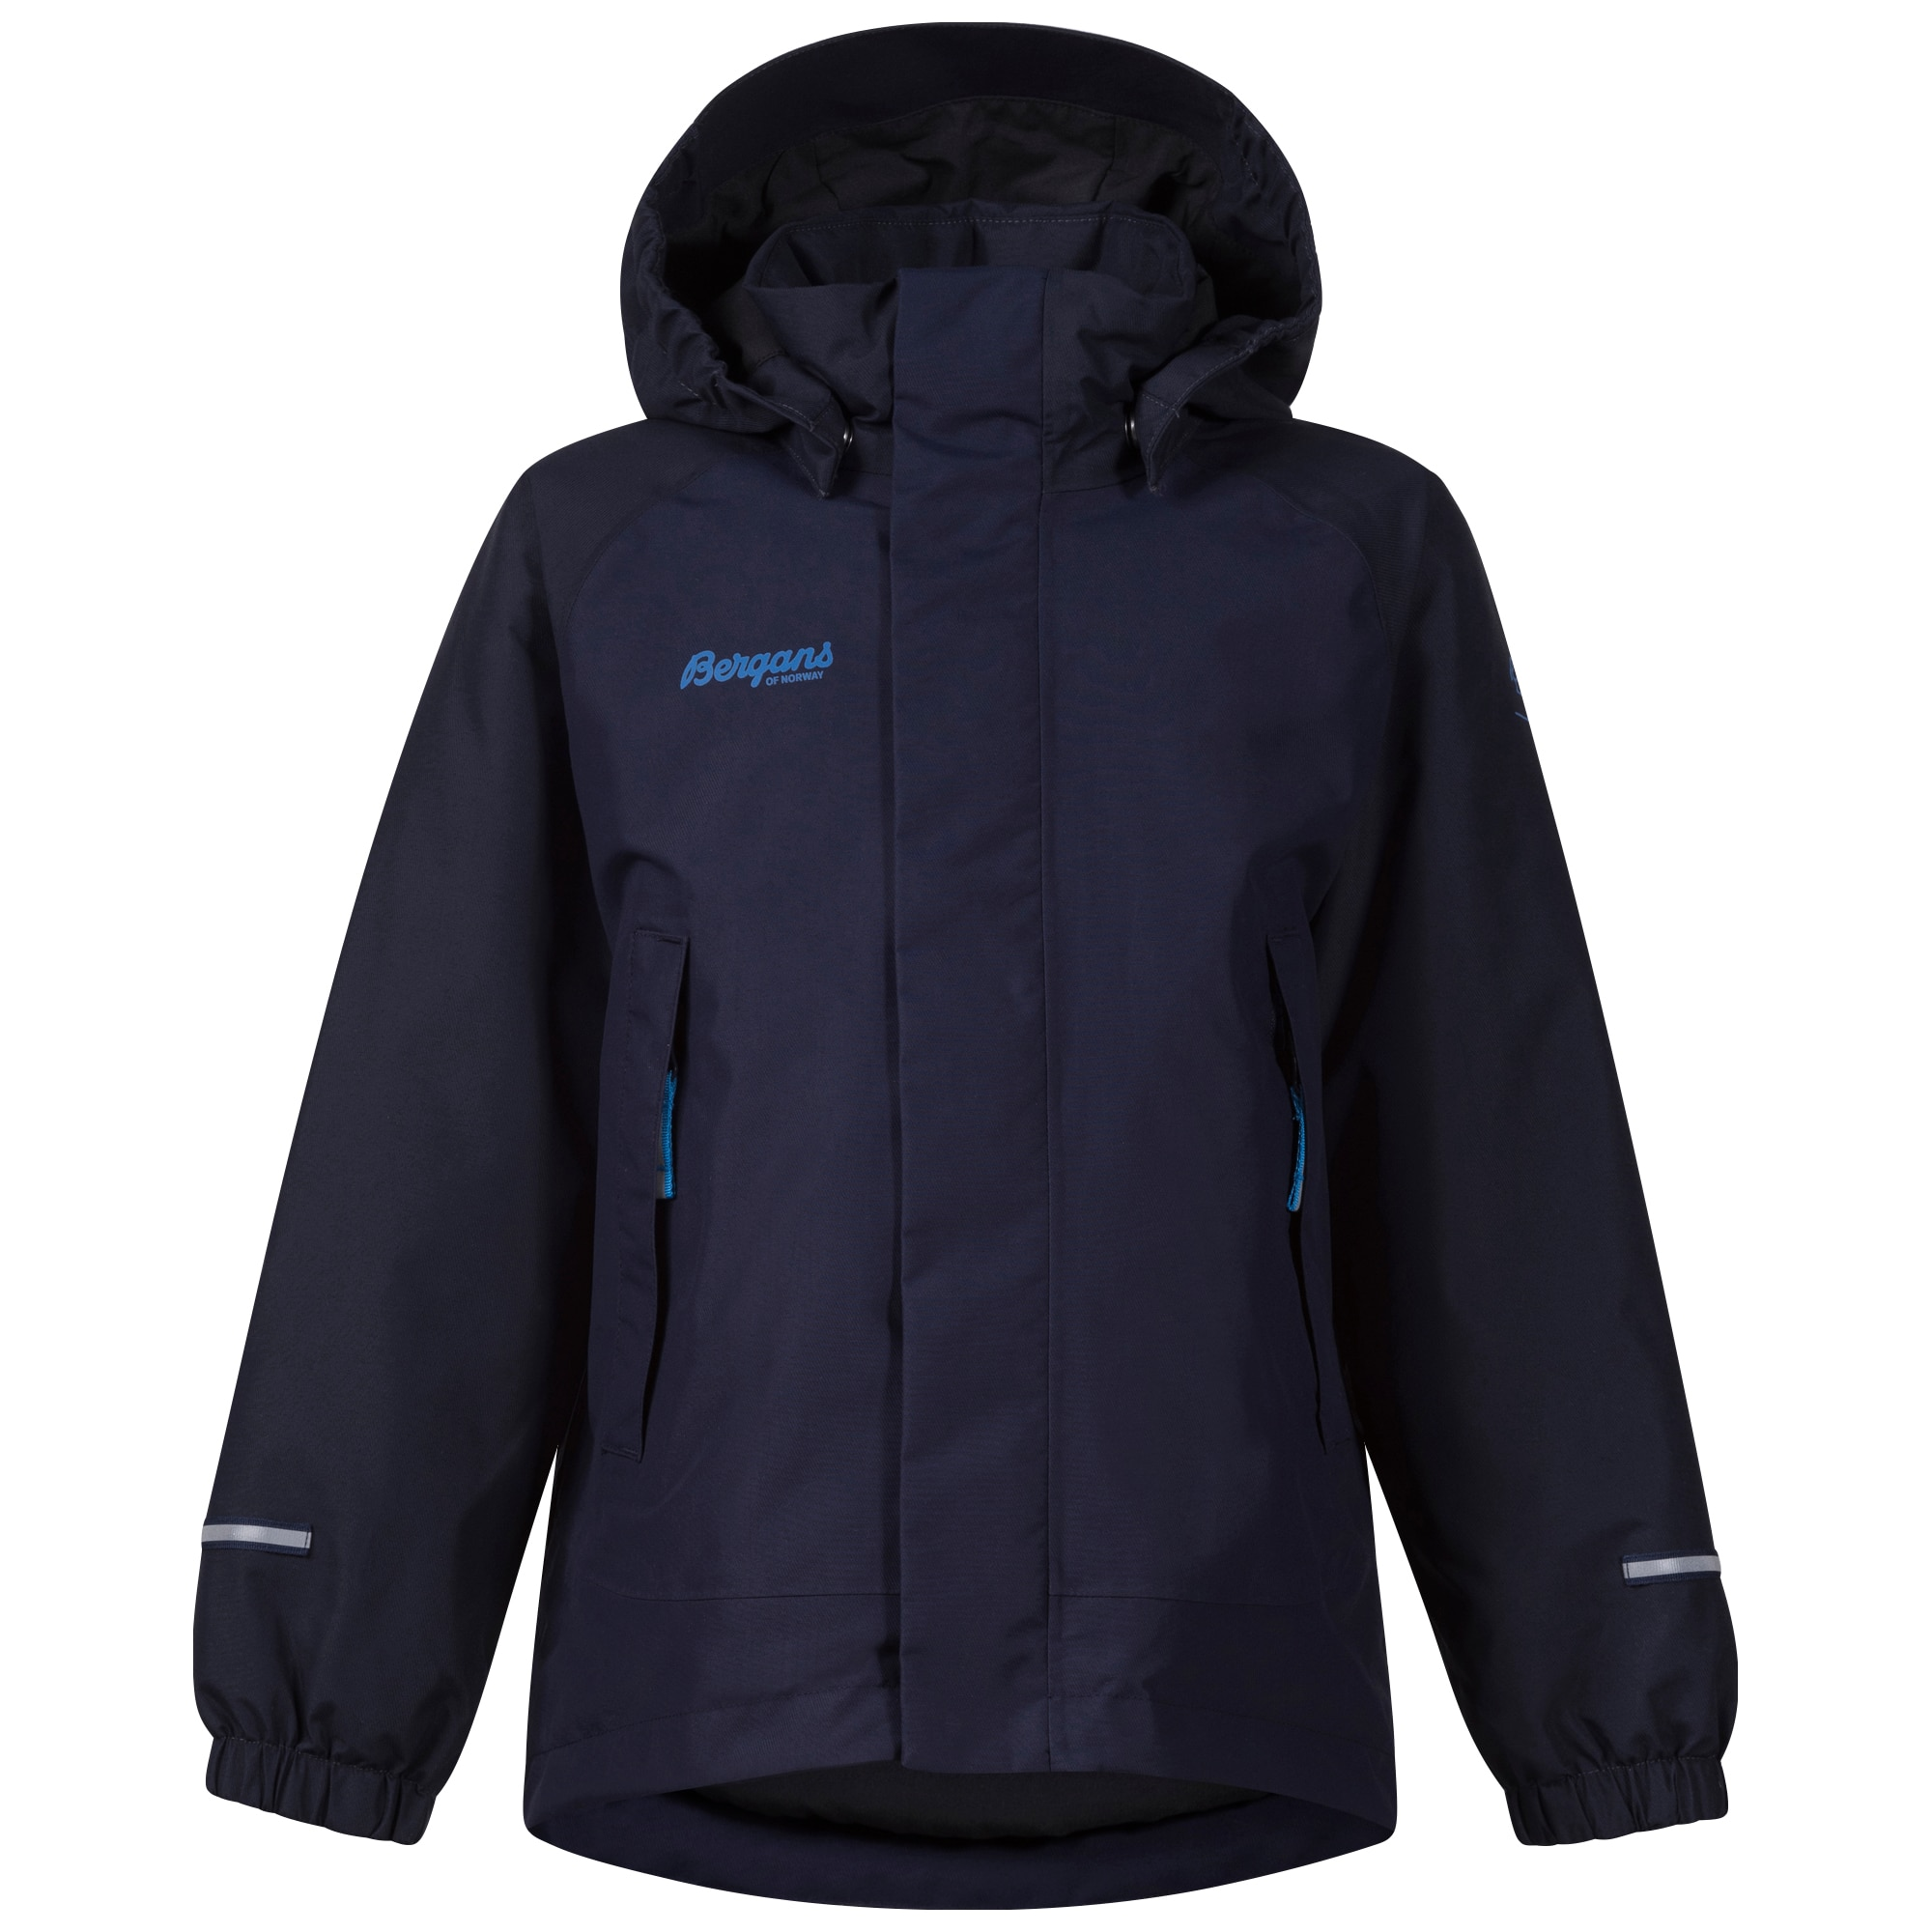 Storm Insulated Kids Jacket